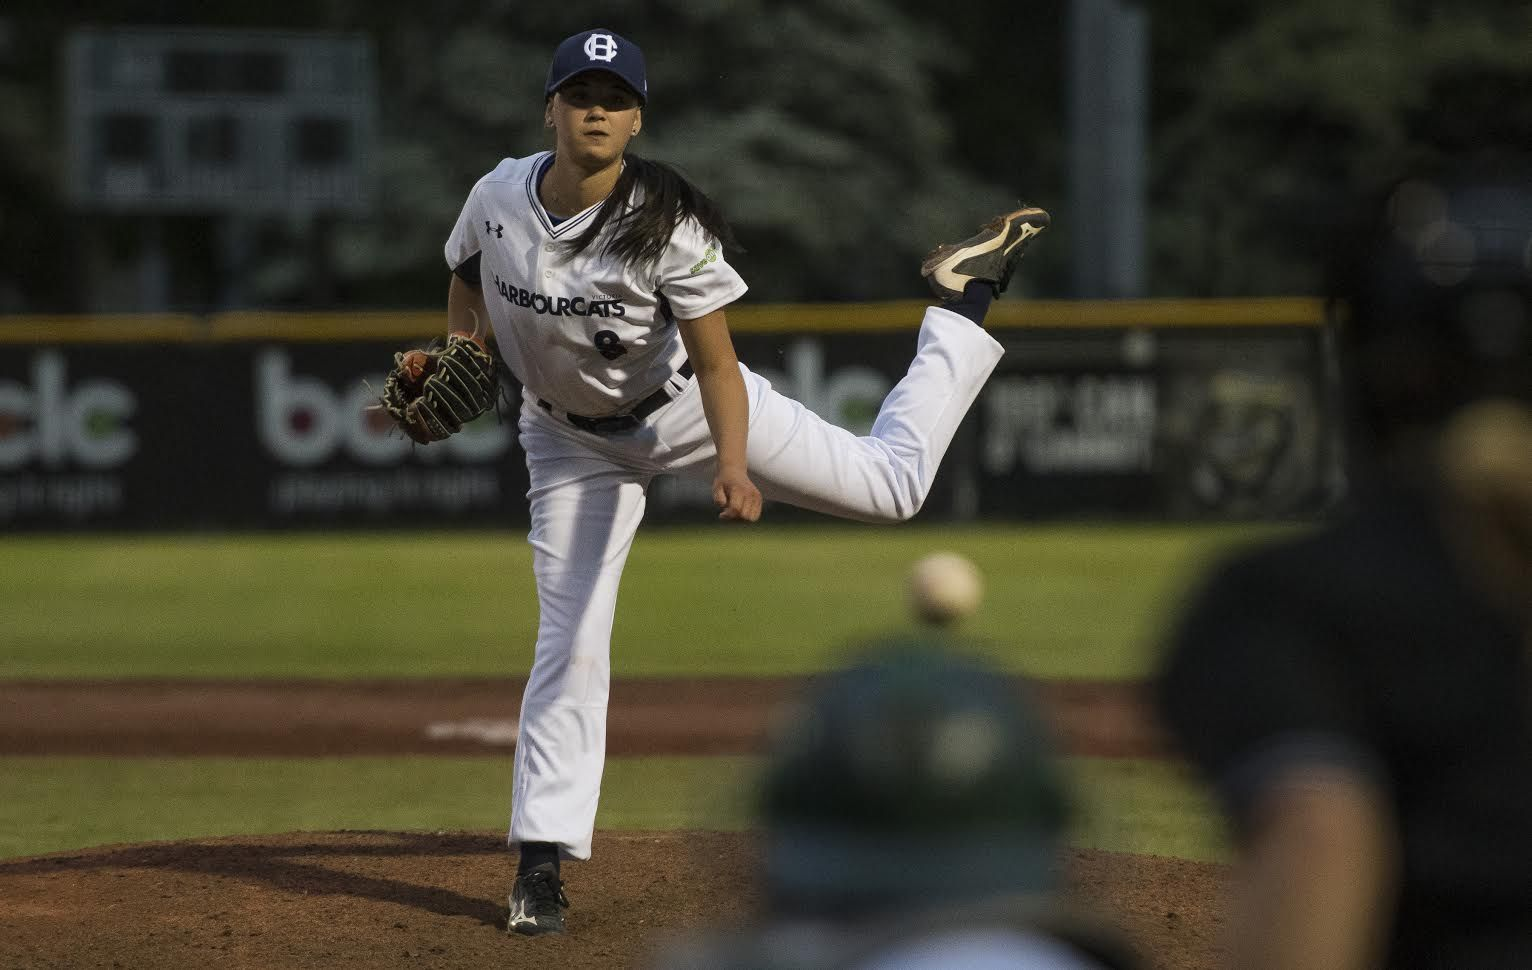 UBC Softball's Claire Eccles makes historic debut for Victoria Harbourcats